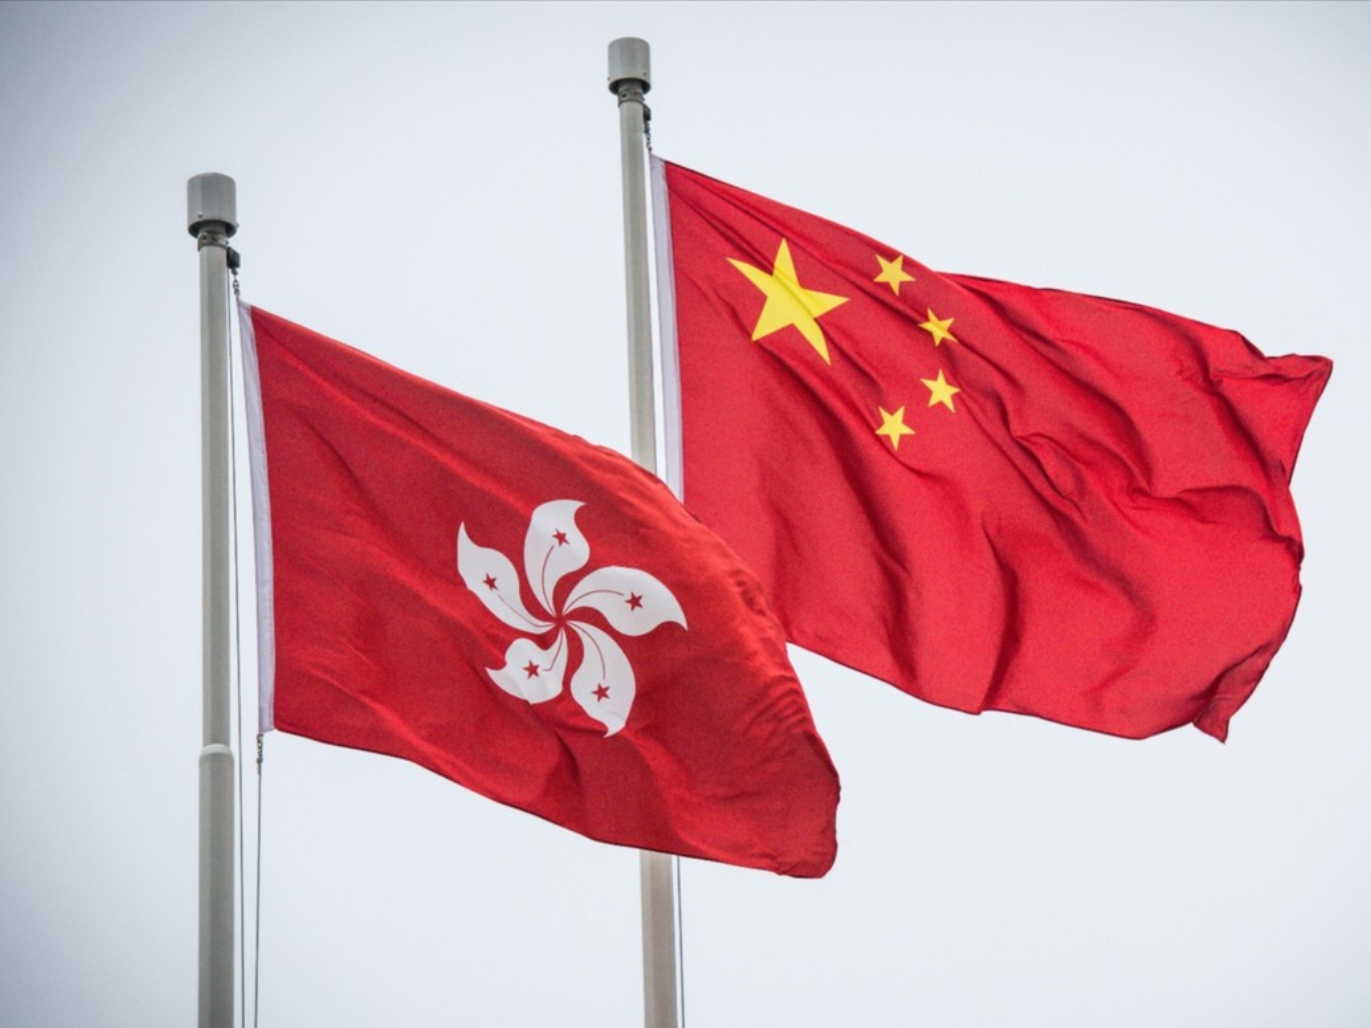 HK's most pressing task to end violence, chaos and restore order: Xi